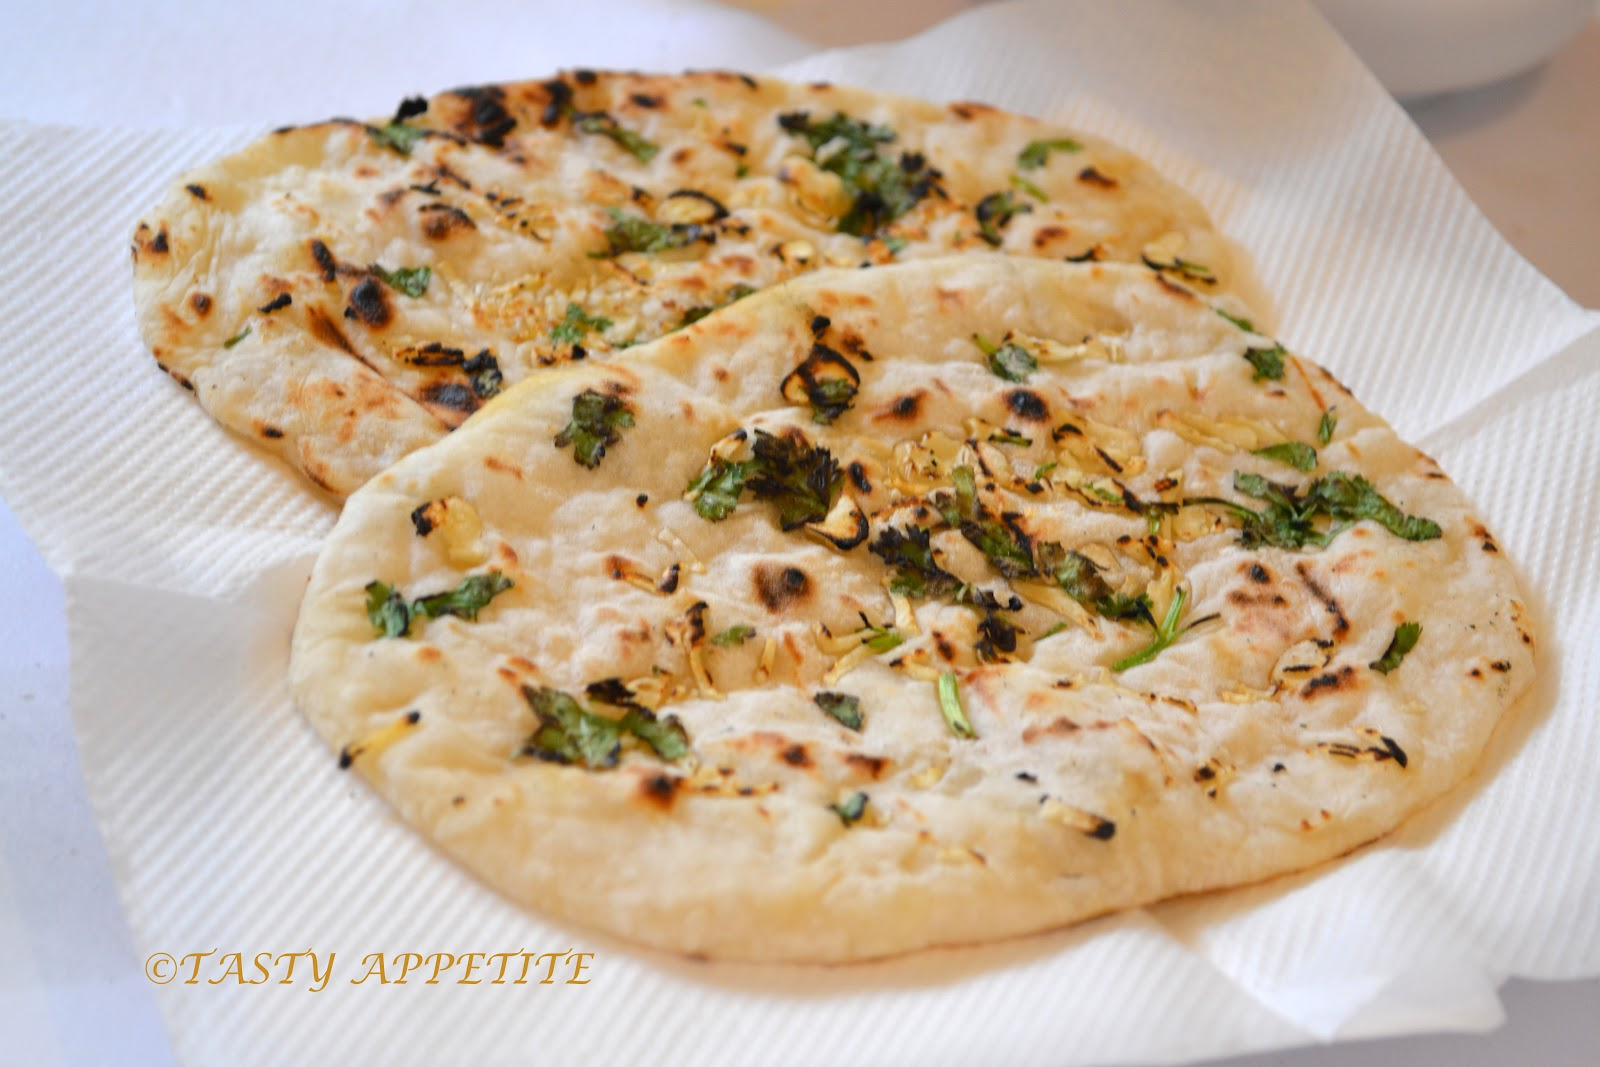 ... naan naan naan naan naan grilled naan monsoon garlic naan bread flickr